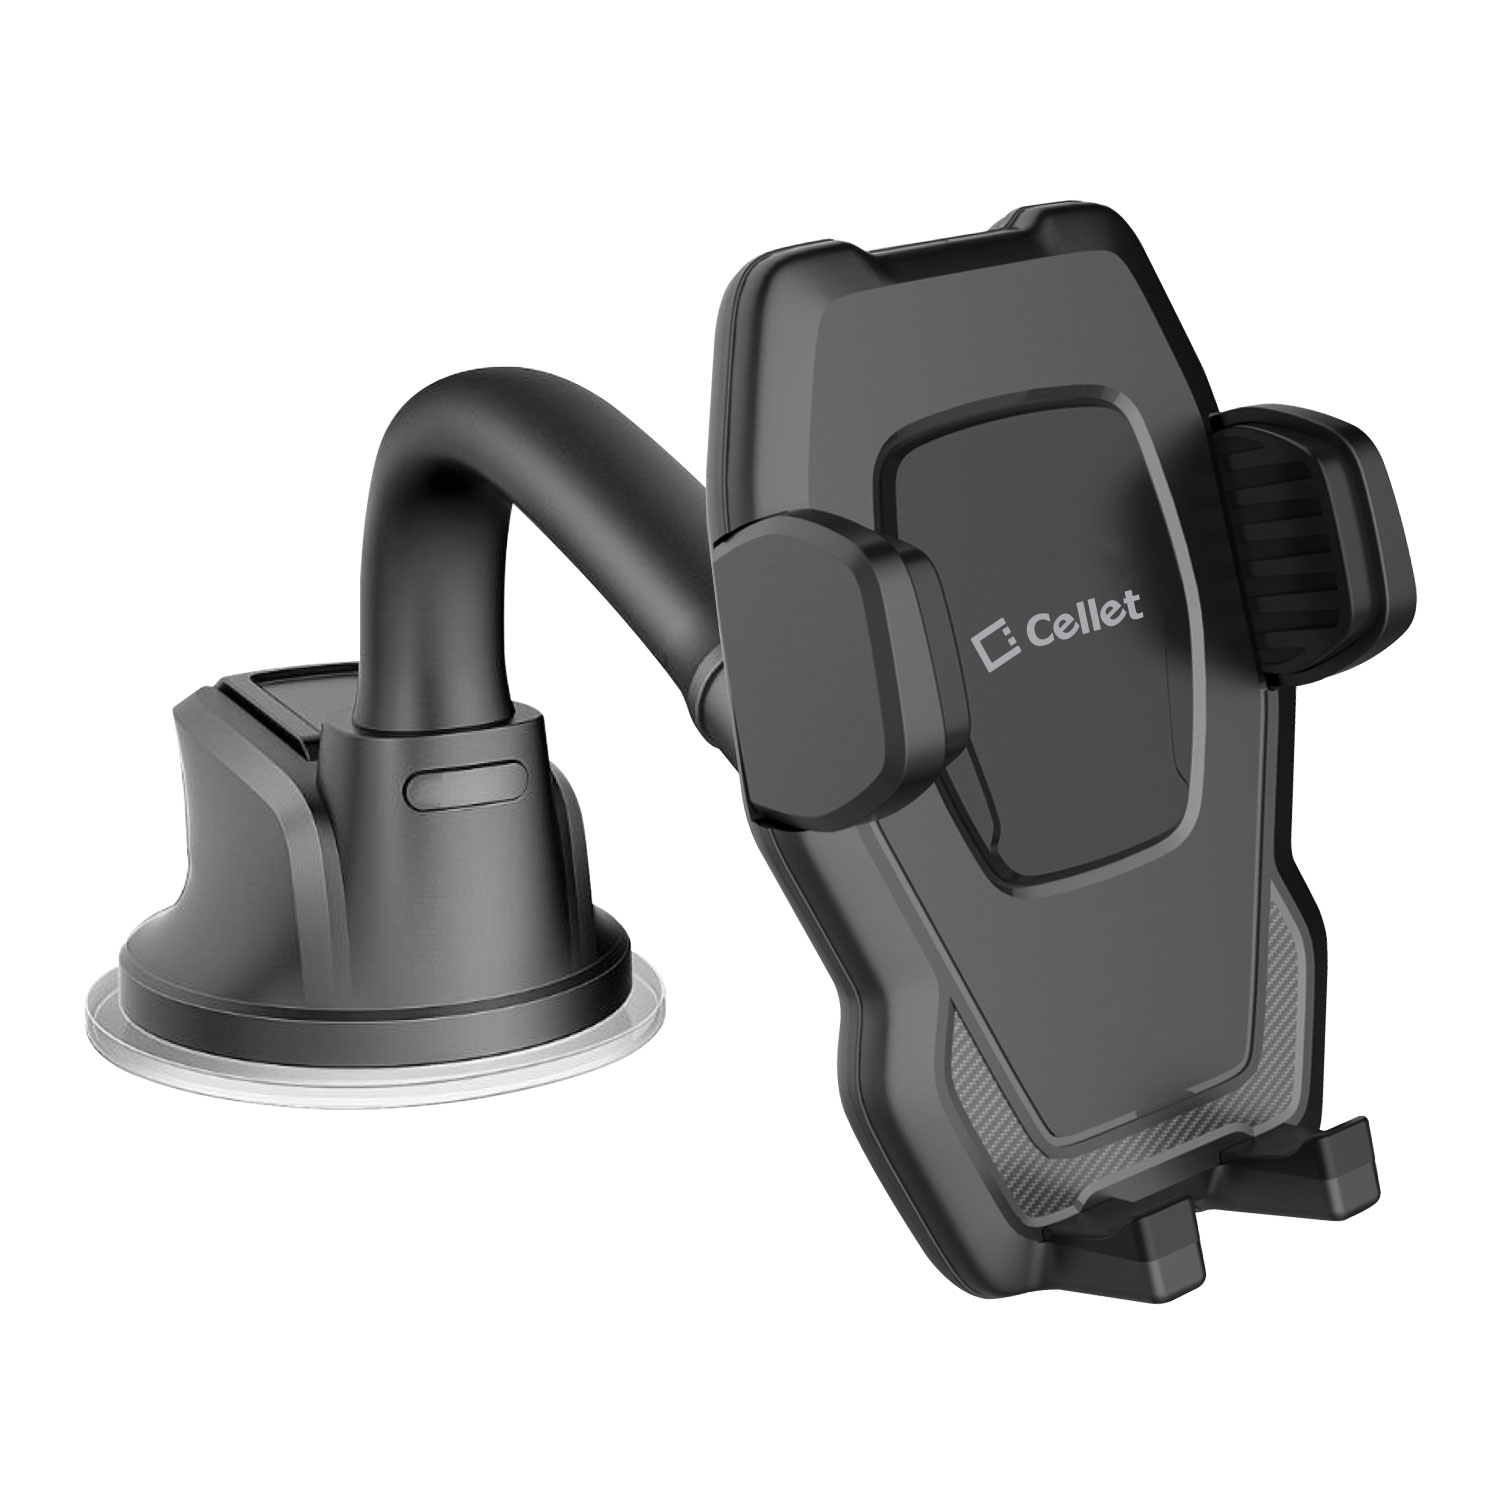 Huawei Union Windshield Phone Holder Goose Neck Black